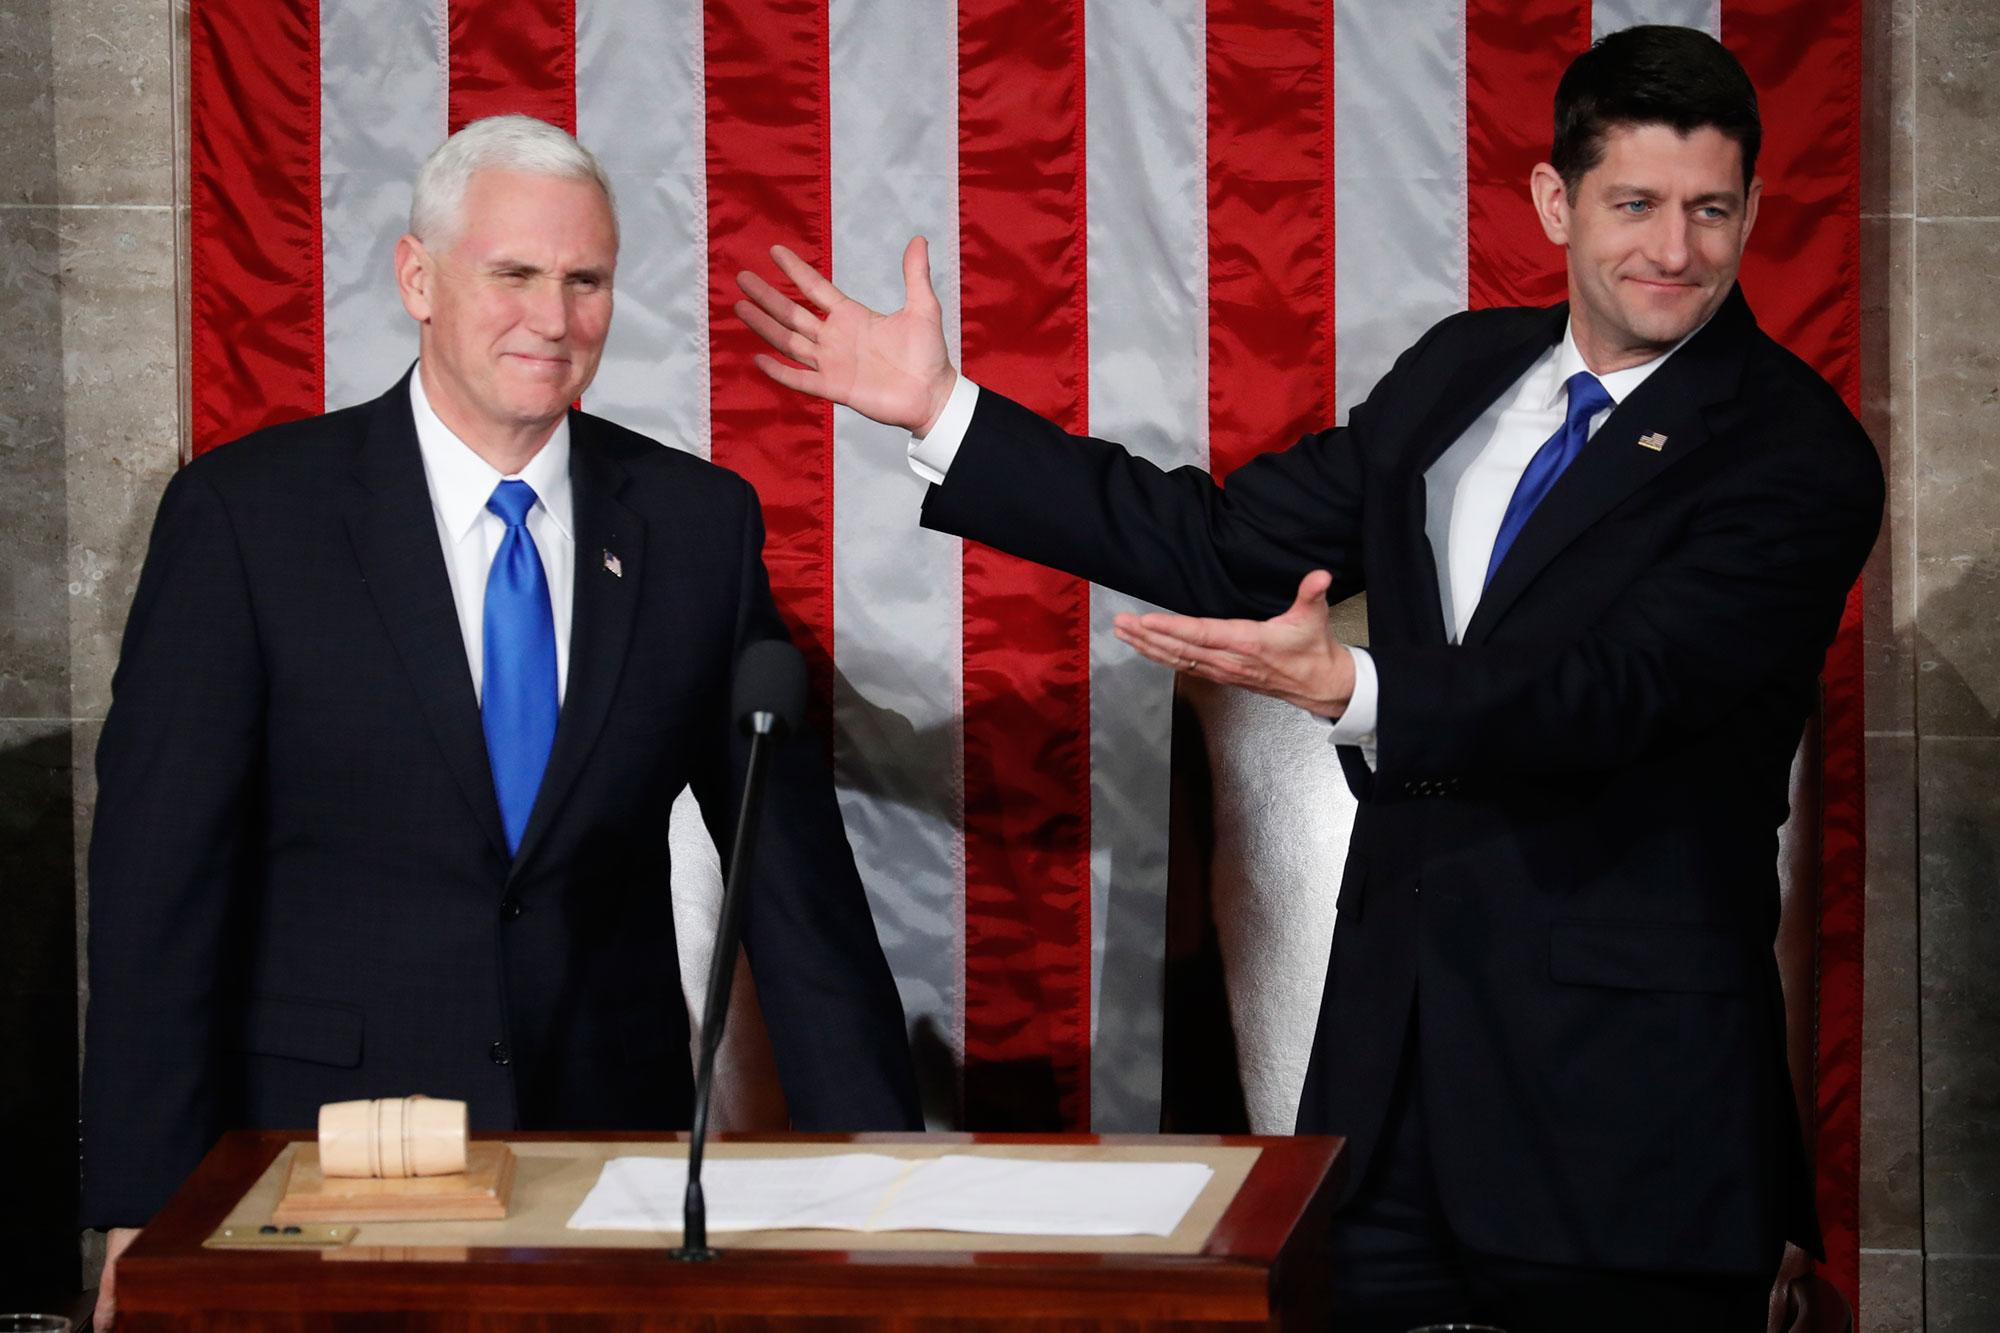 <p>House Speaker Paul Ryan of Wis. gestures toward Vice President Mike Pence on Capitol Hill in Washington, Tuesday, Feb. 28, 2017, prior to President Donald Trump's address to a joint session of Congress. (AP Photo/Pablo Martinez Monsivais) </p>